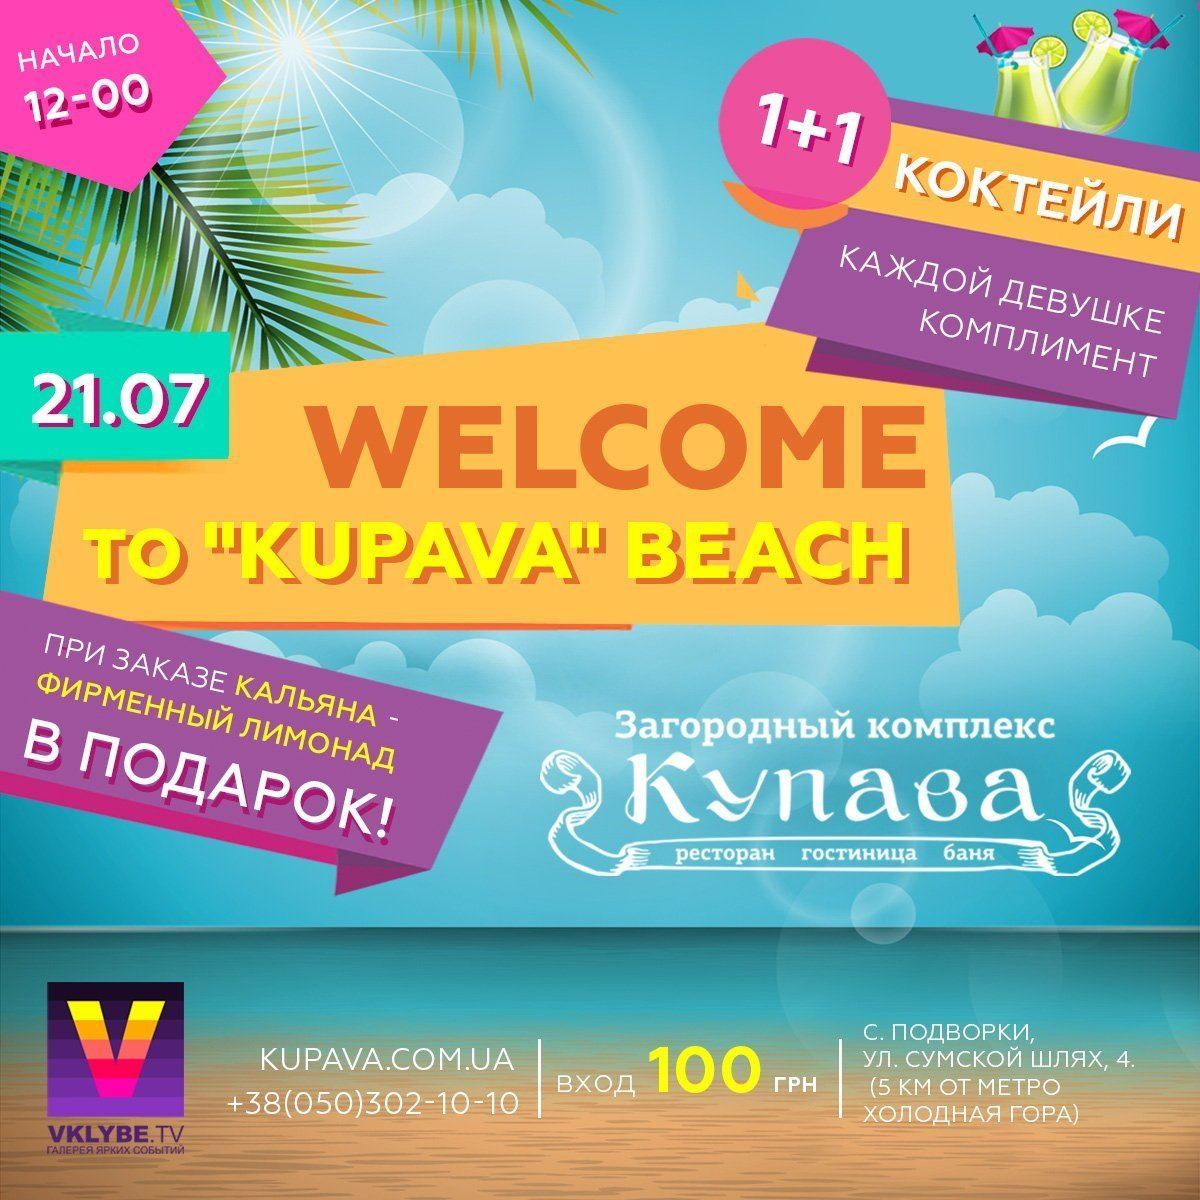 21.07 (суббота) - Welcome to Kupava Beach